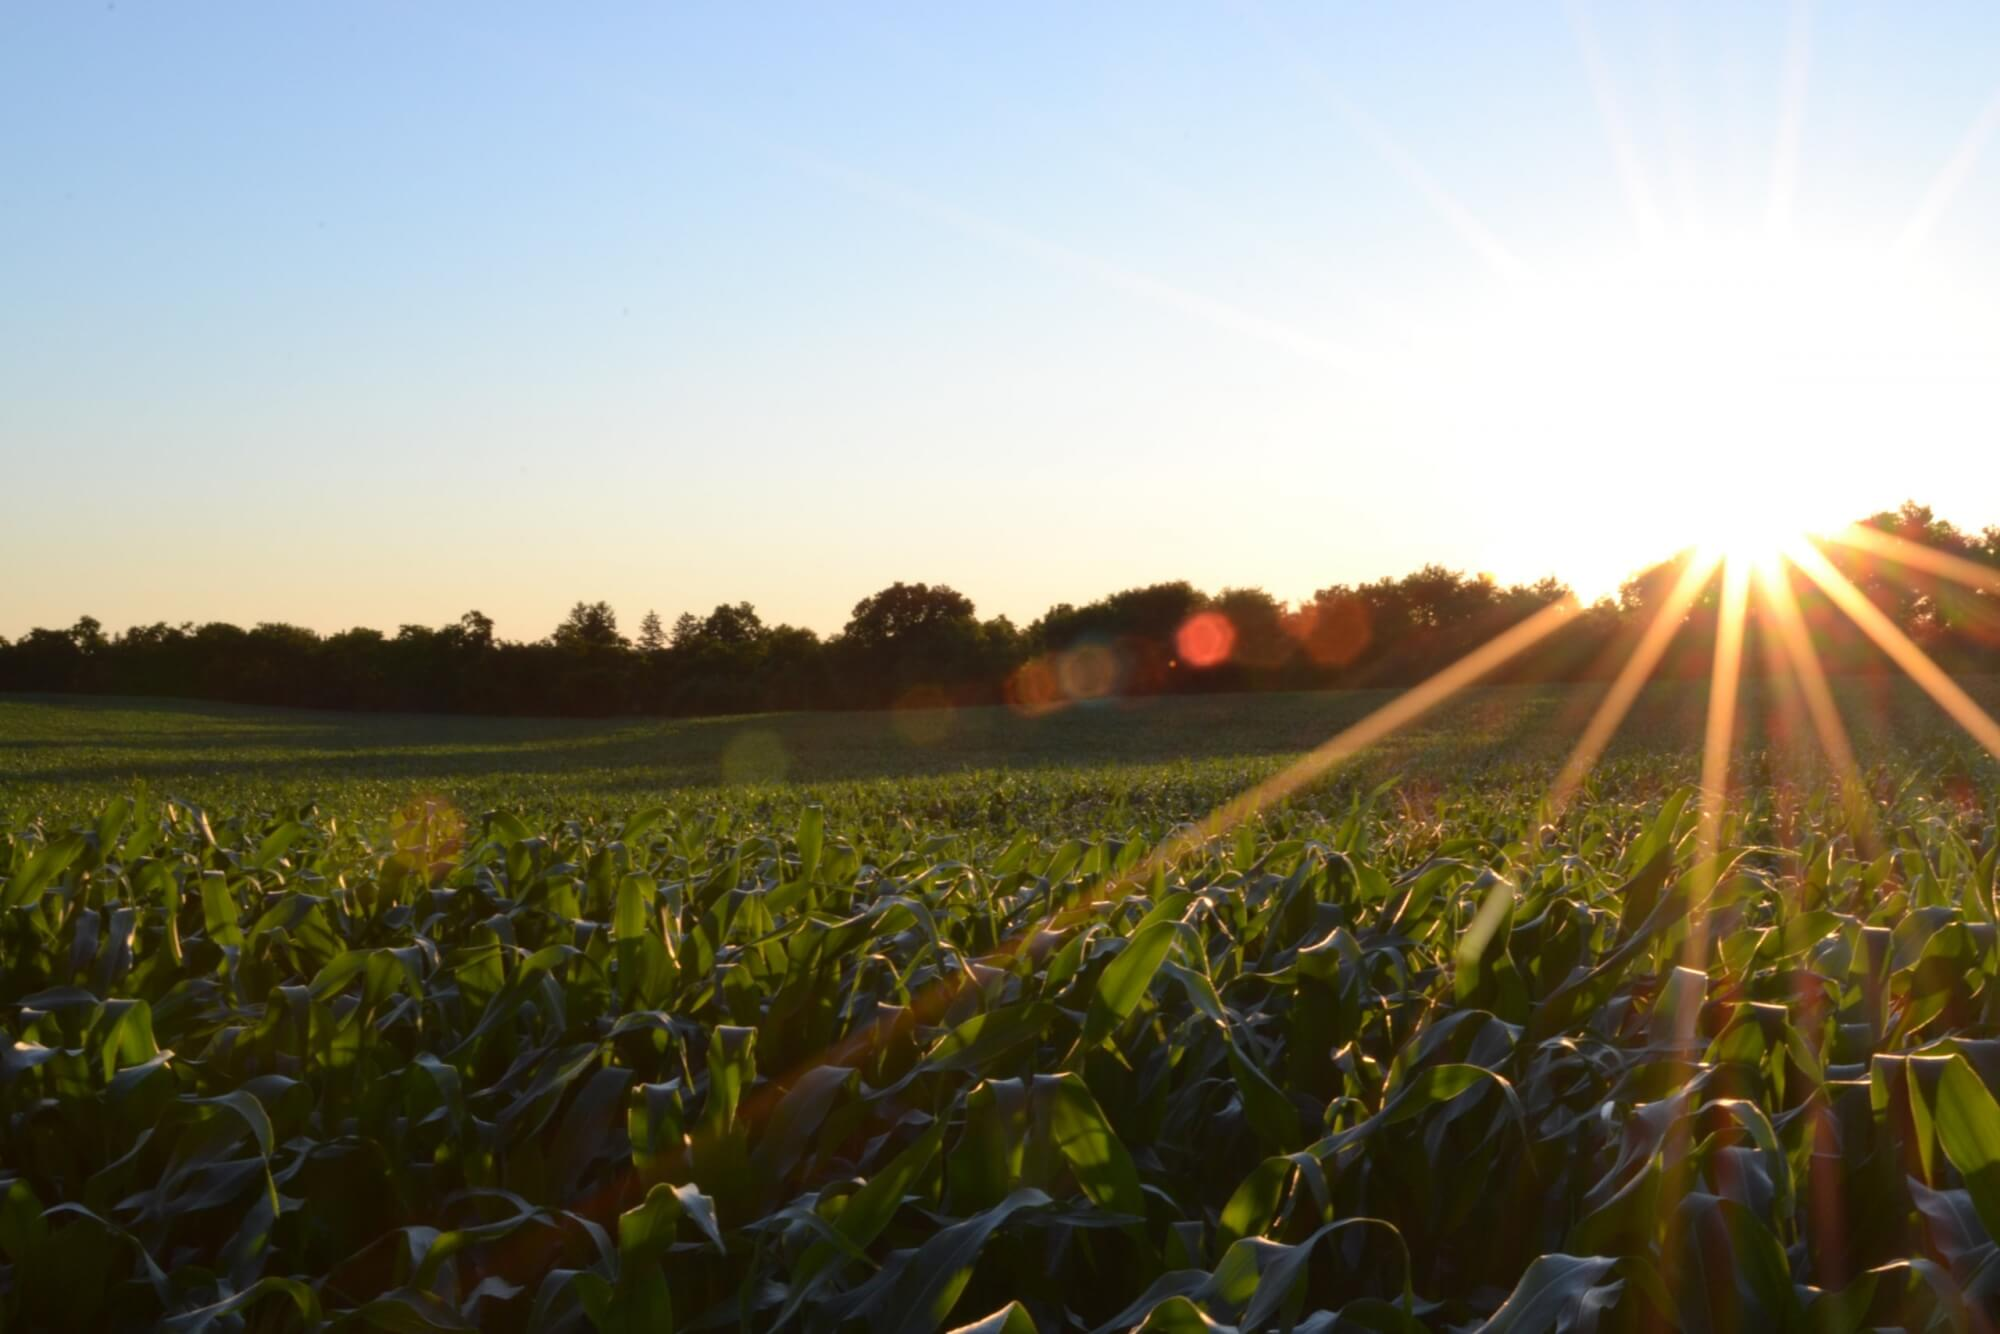 Sunlight touches crops in a field